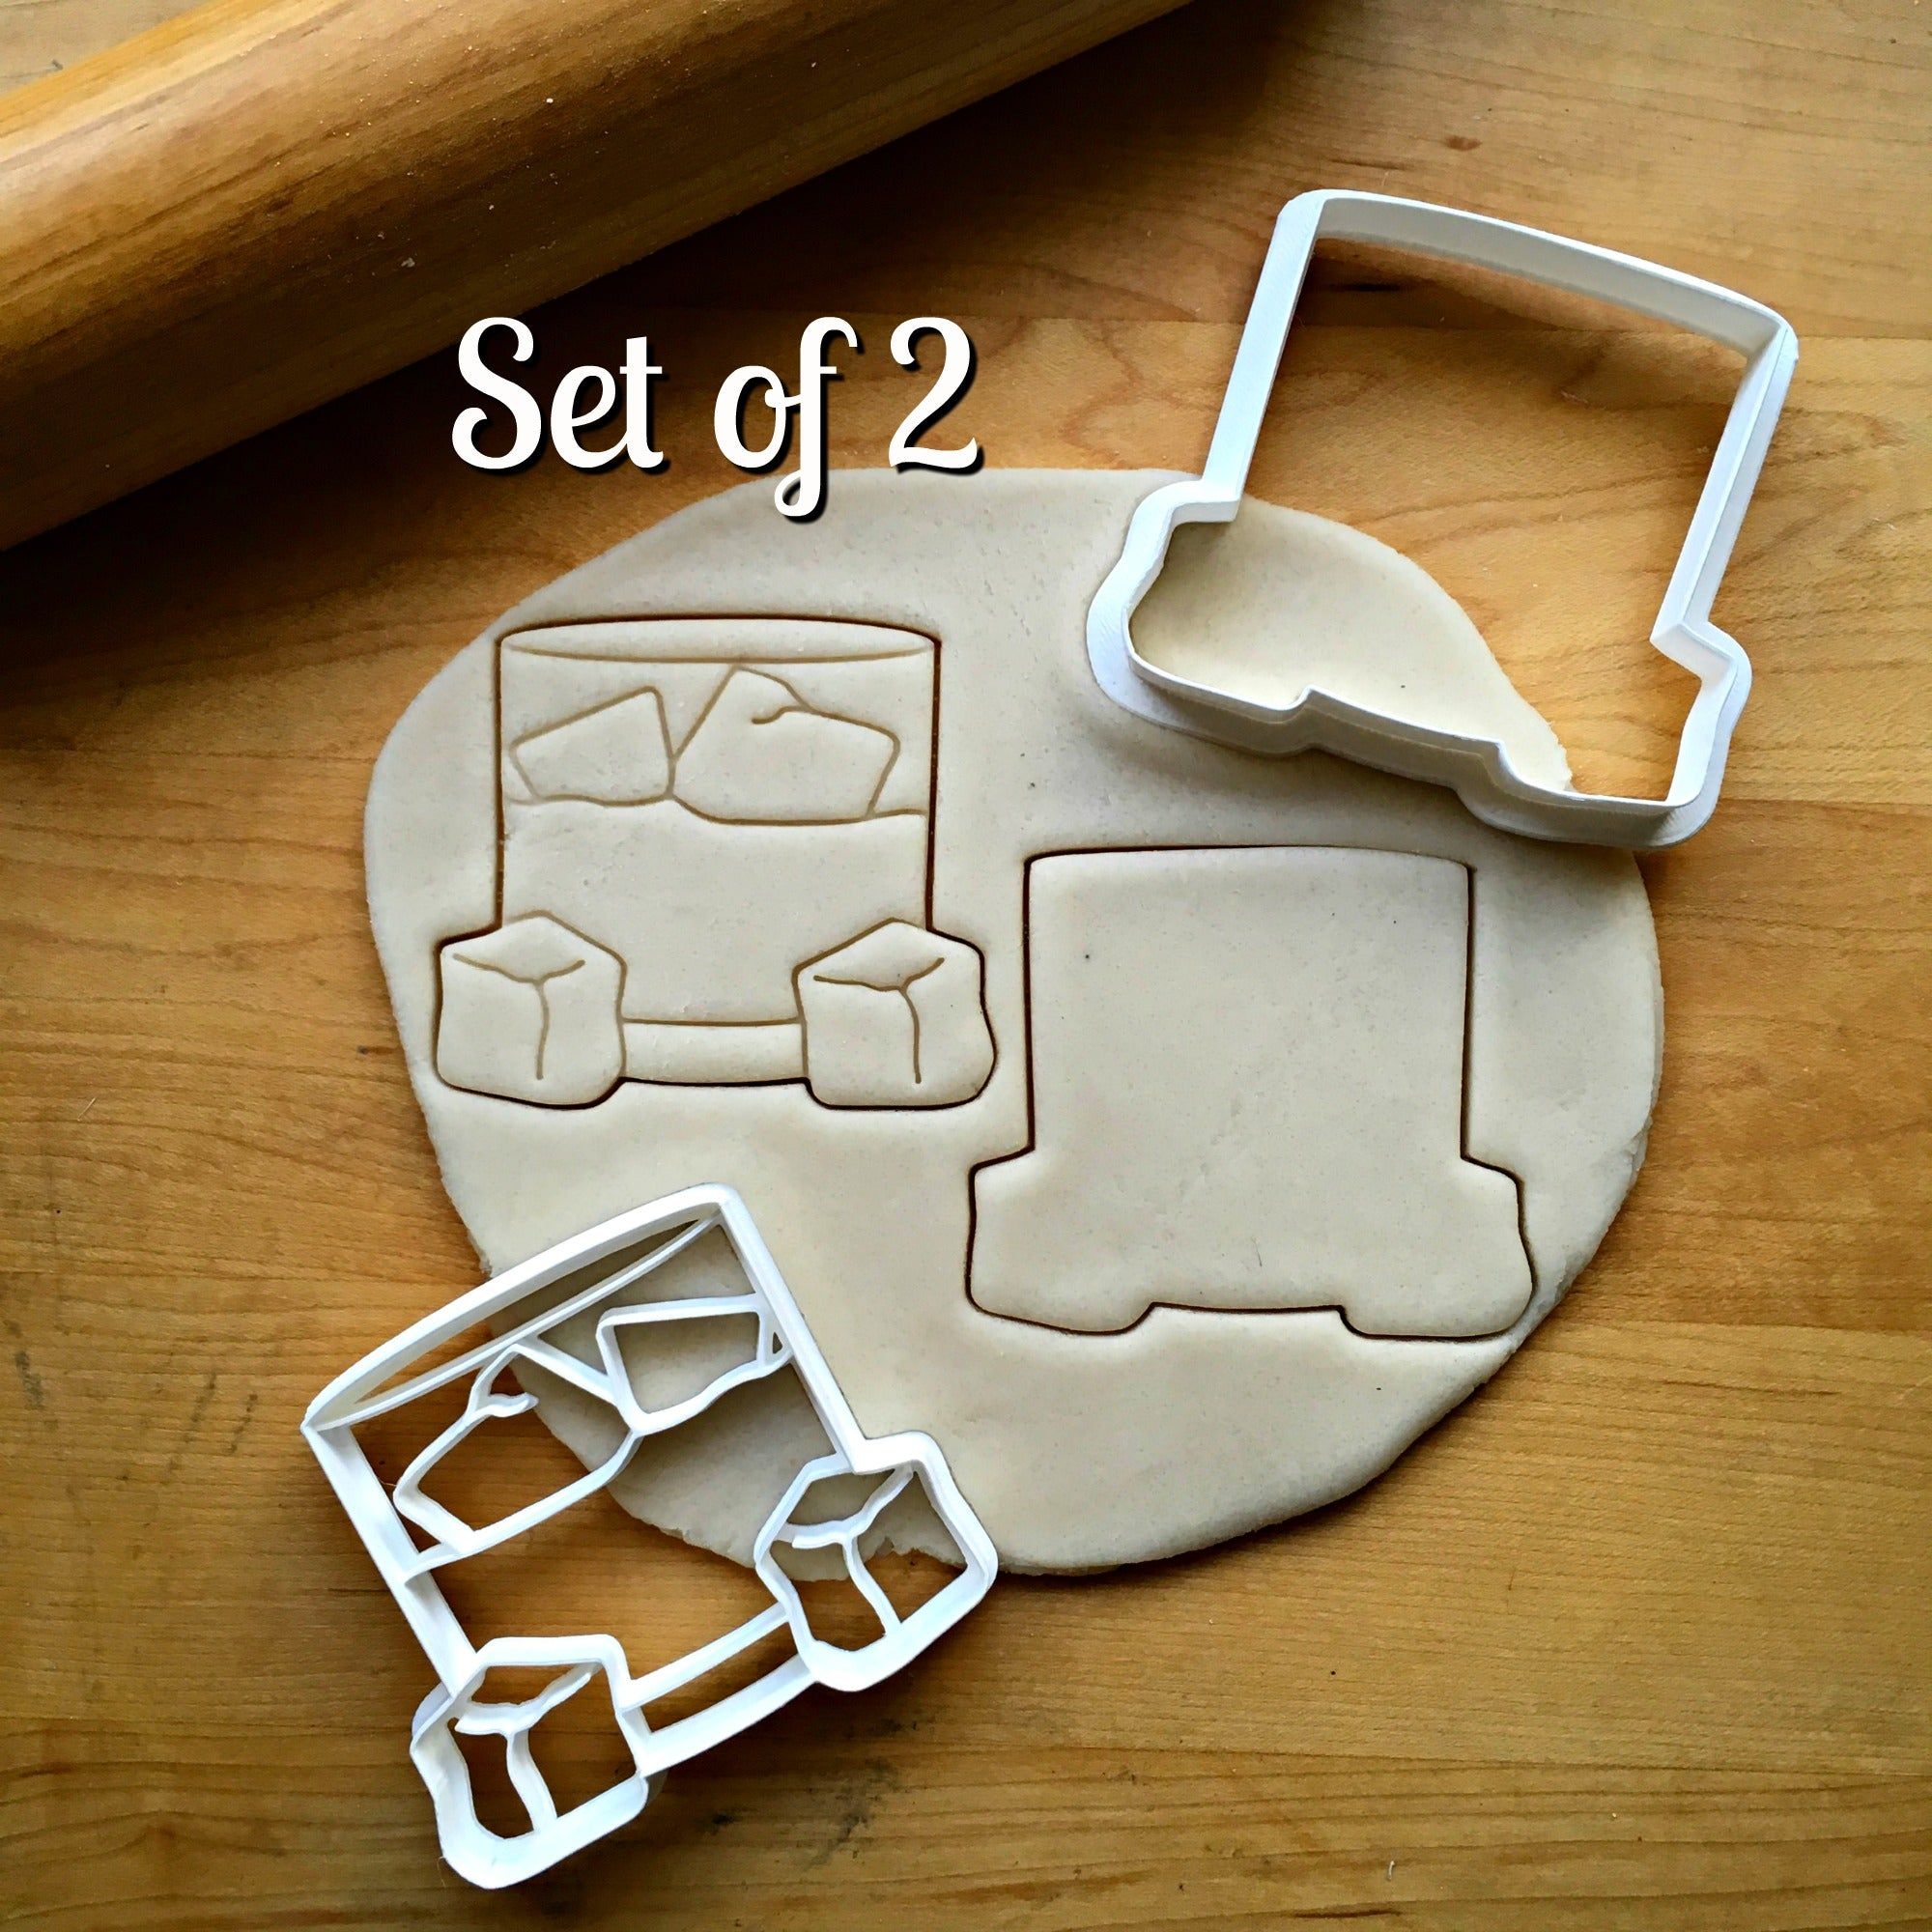 Set of 2 Whiskey Glass Cookie Cutters/Dishwasher Safe